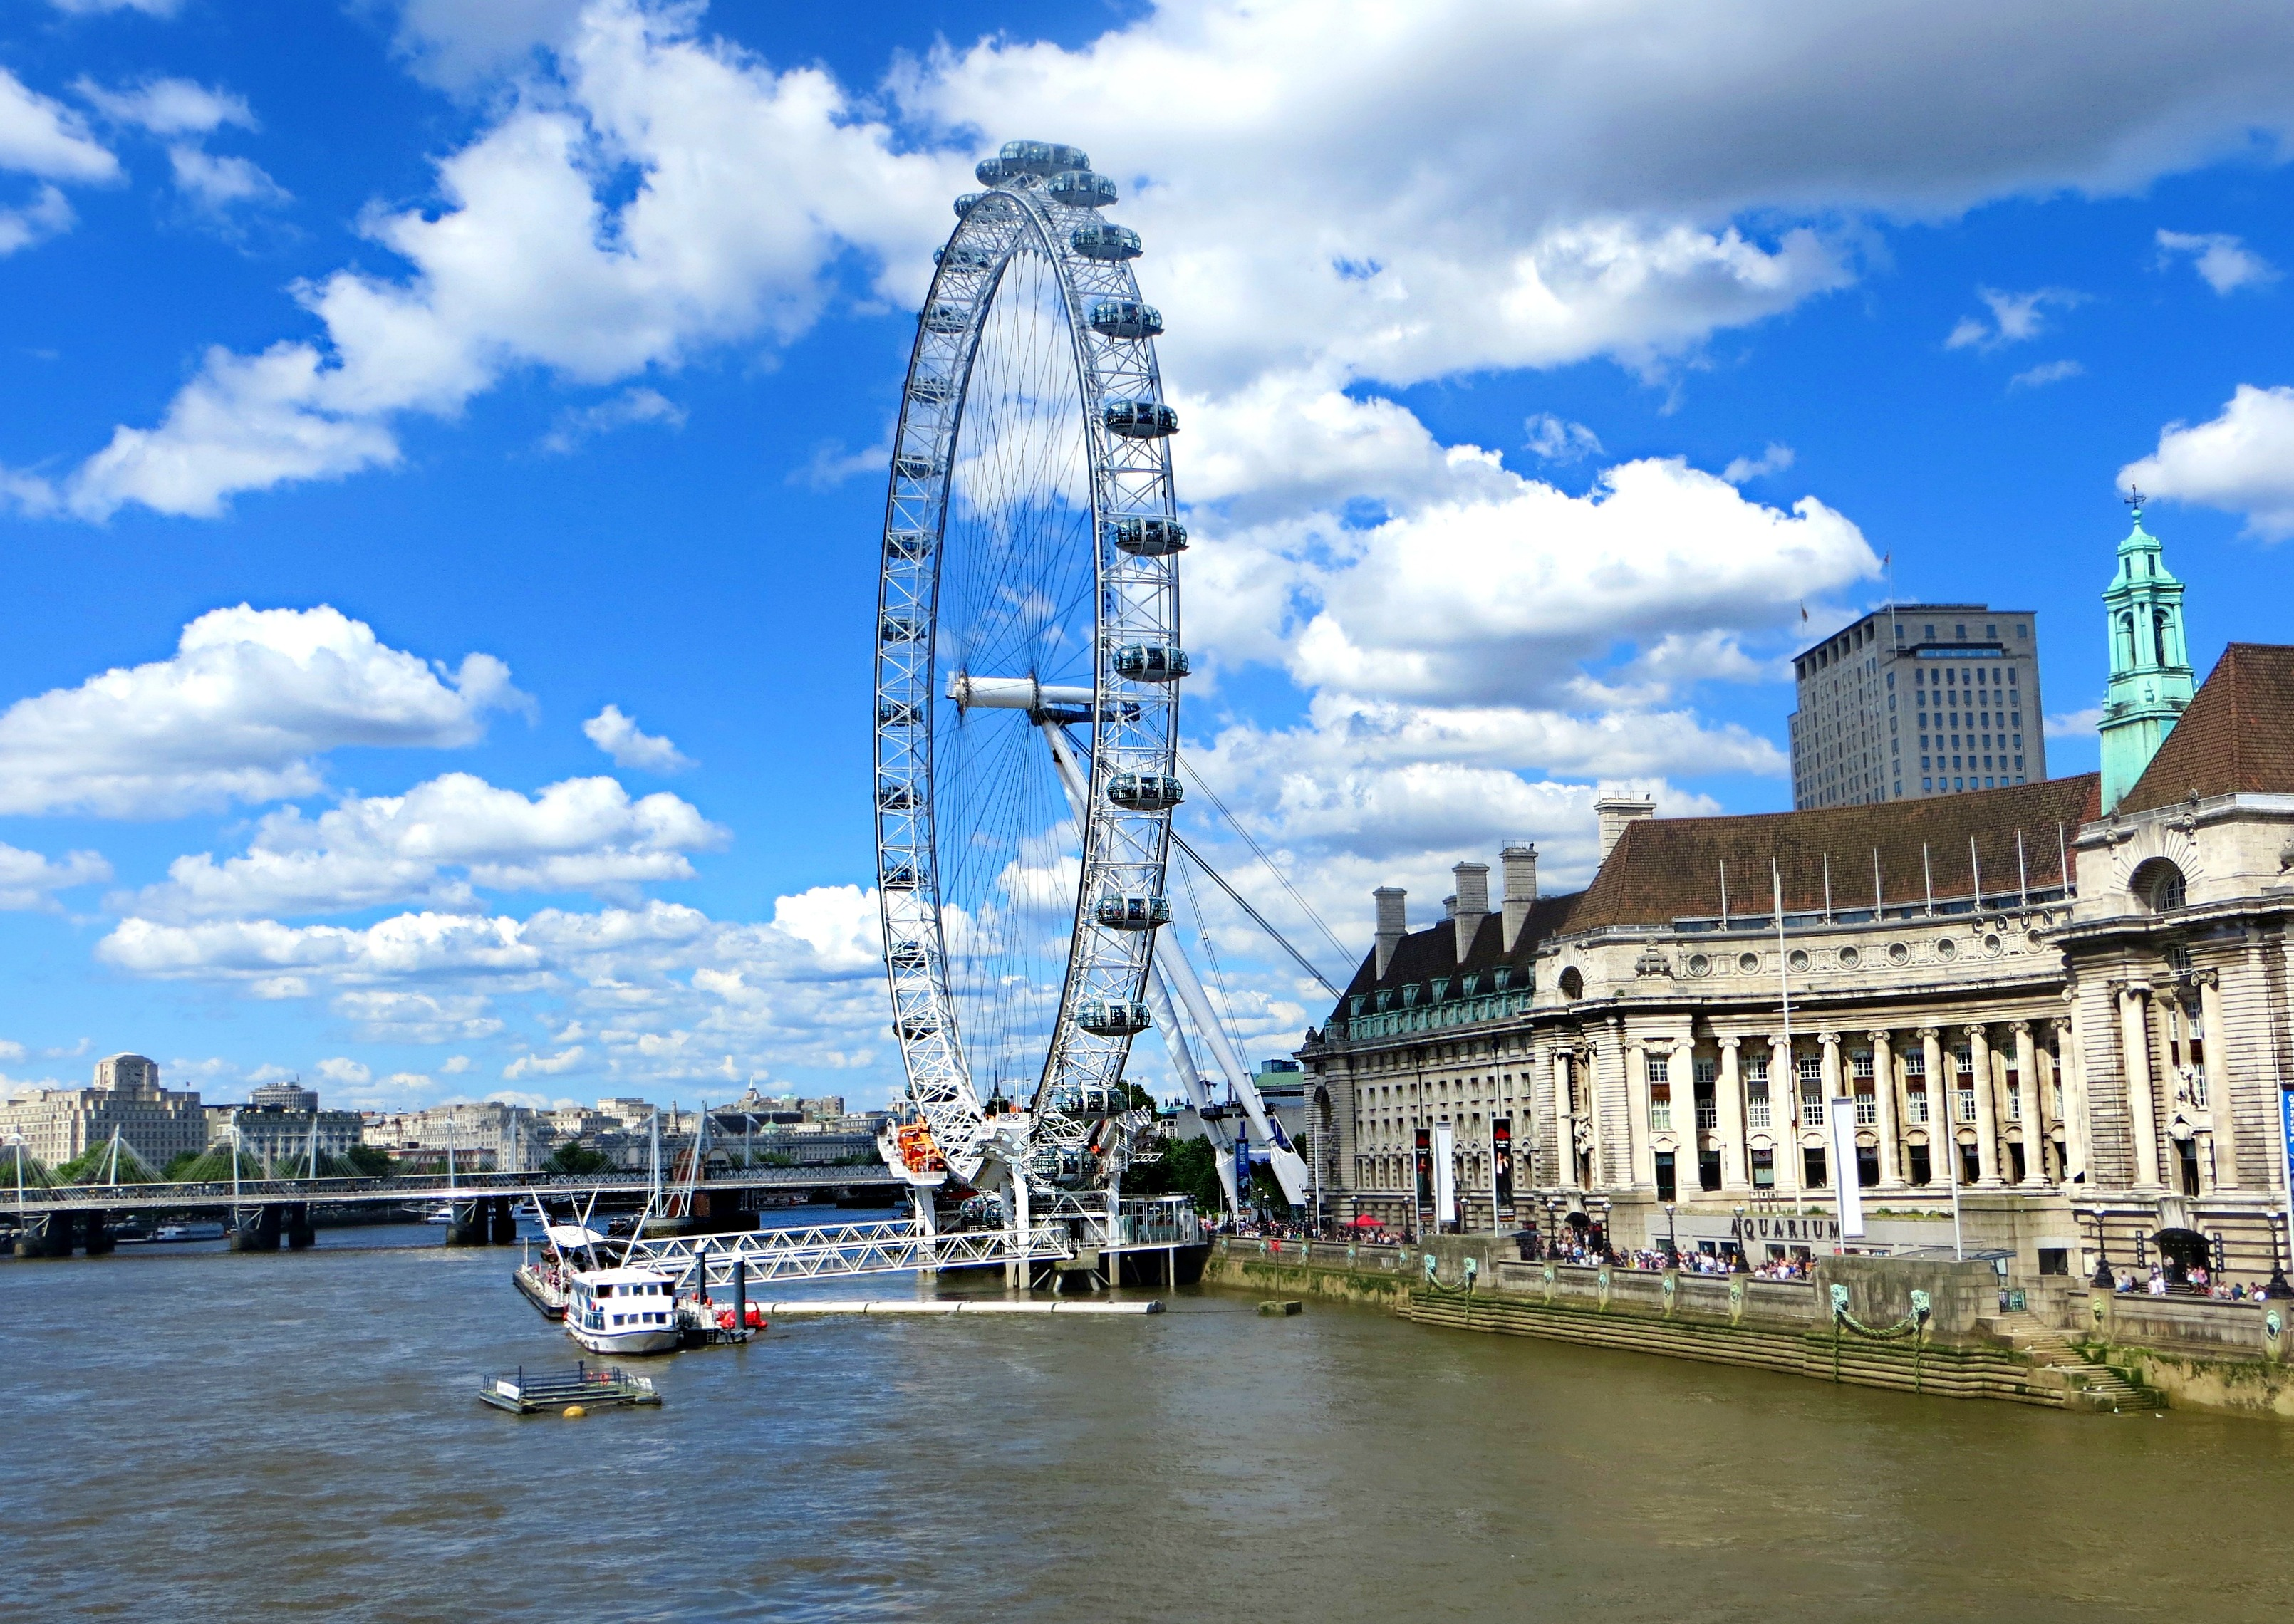 London, England Snapshots // The London Eye Ferris Wheel // London Travel Diary // Los Angeles Fashion Blogger Daphne Blunt: To Style, With Love